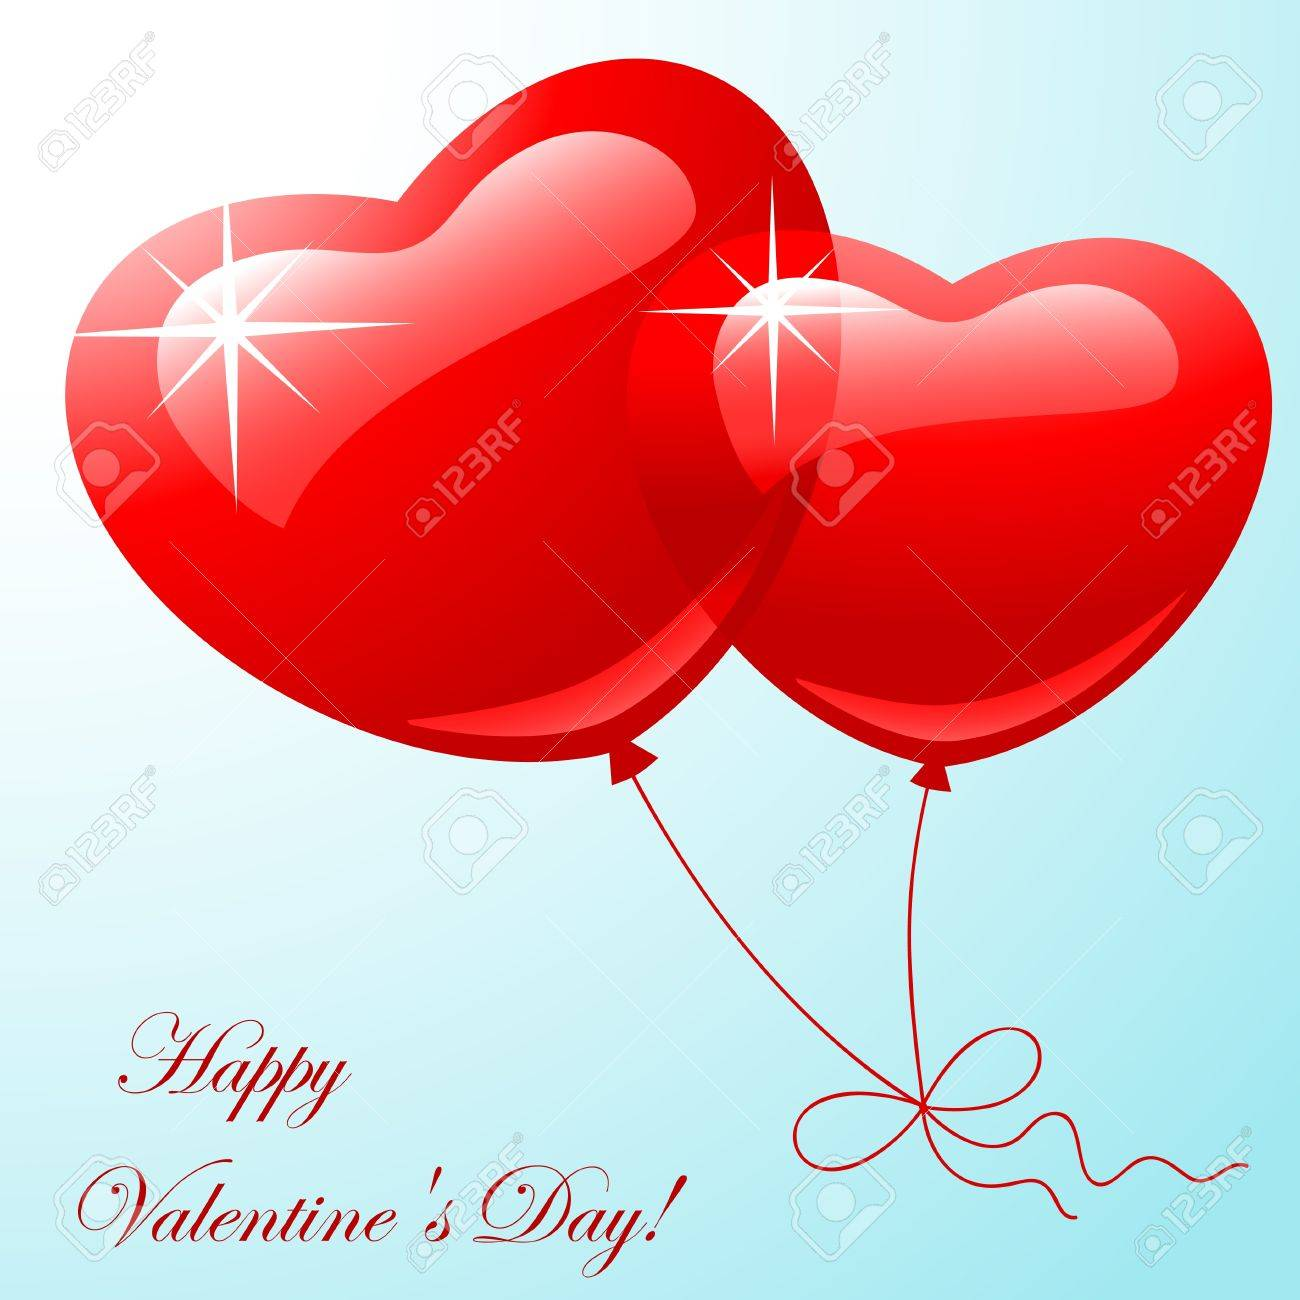 Valentine greeting card - happy valentine day.Red two balloon in shape hearts on a blue background. Vector illustration Stock Vector - 11924419